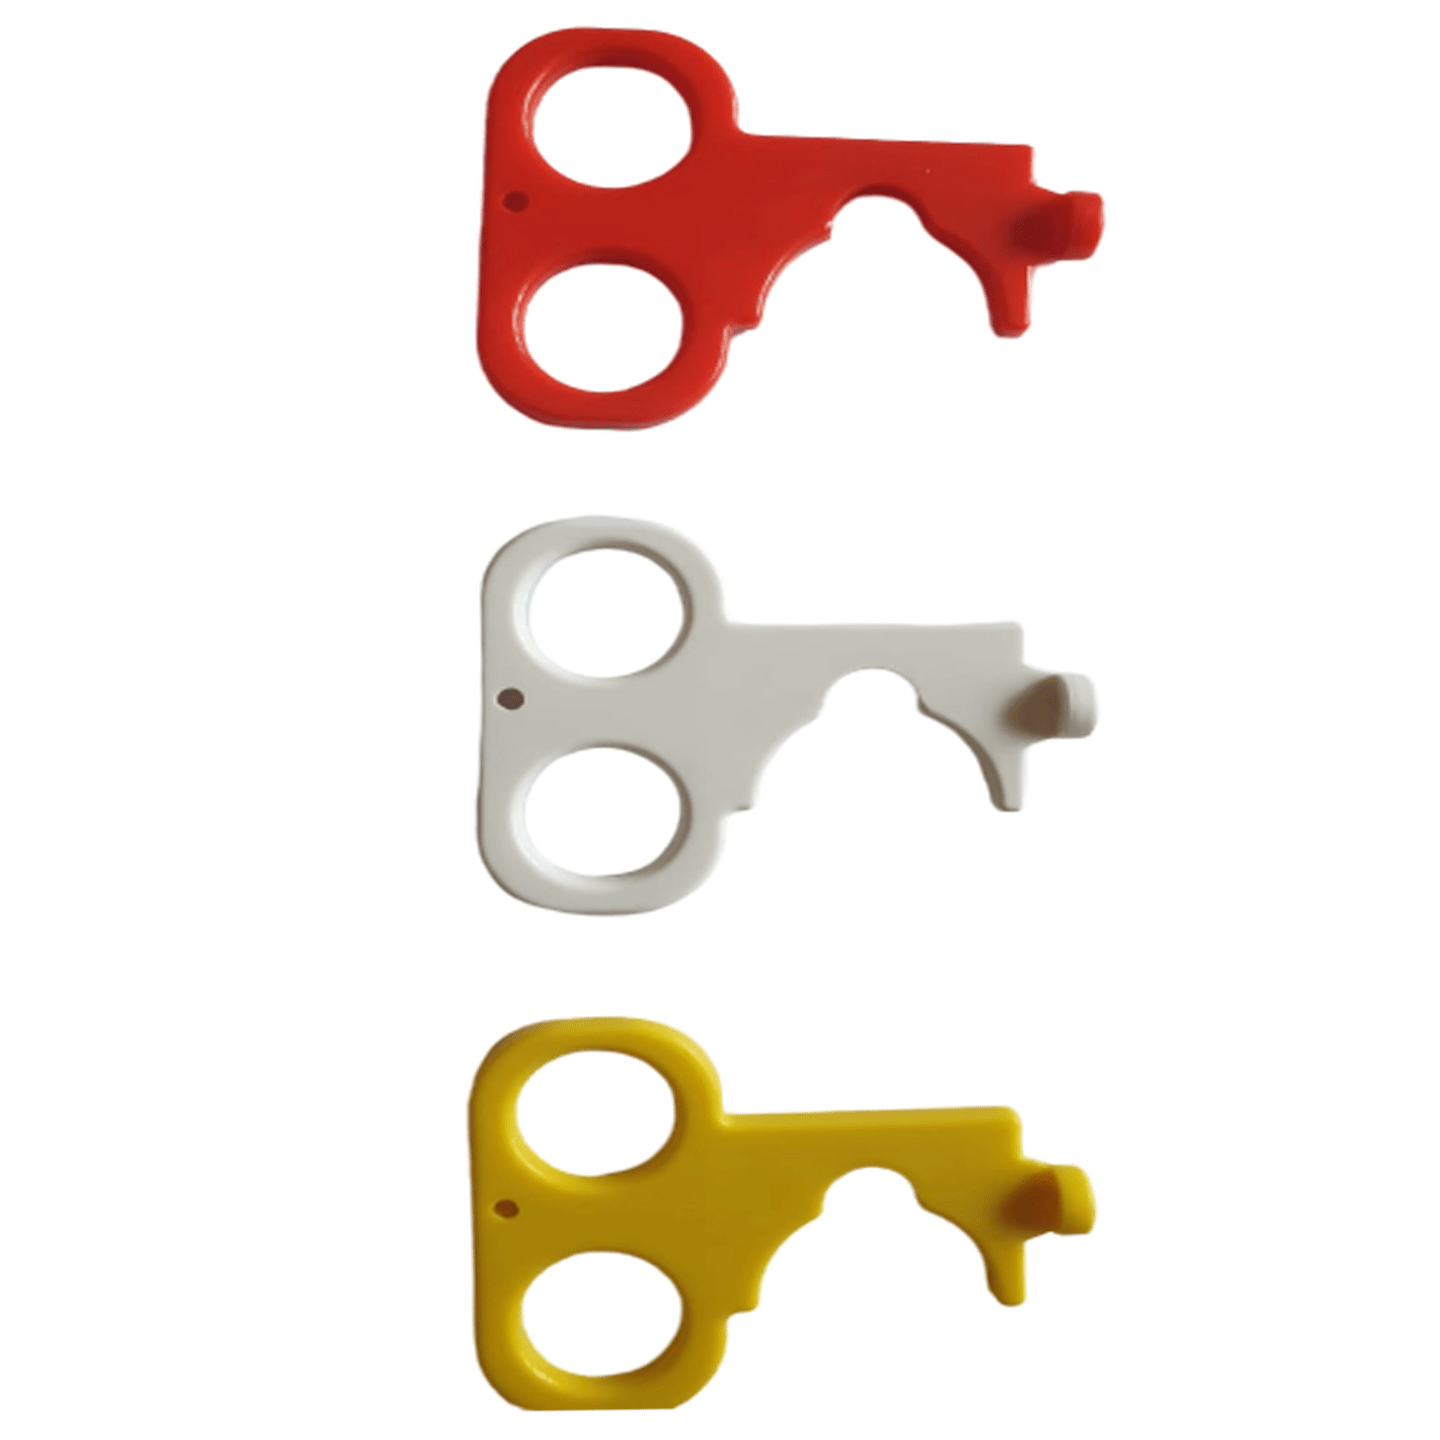 Safety Key (Pack of 5) | Covid Prevention Product CP-05